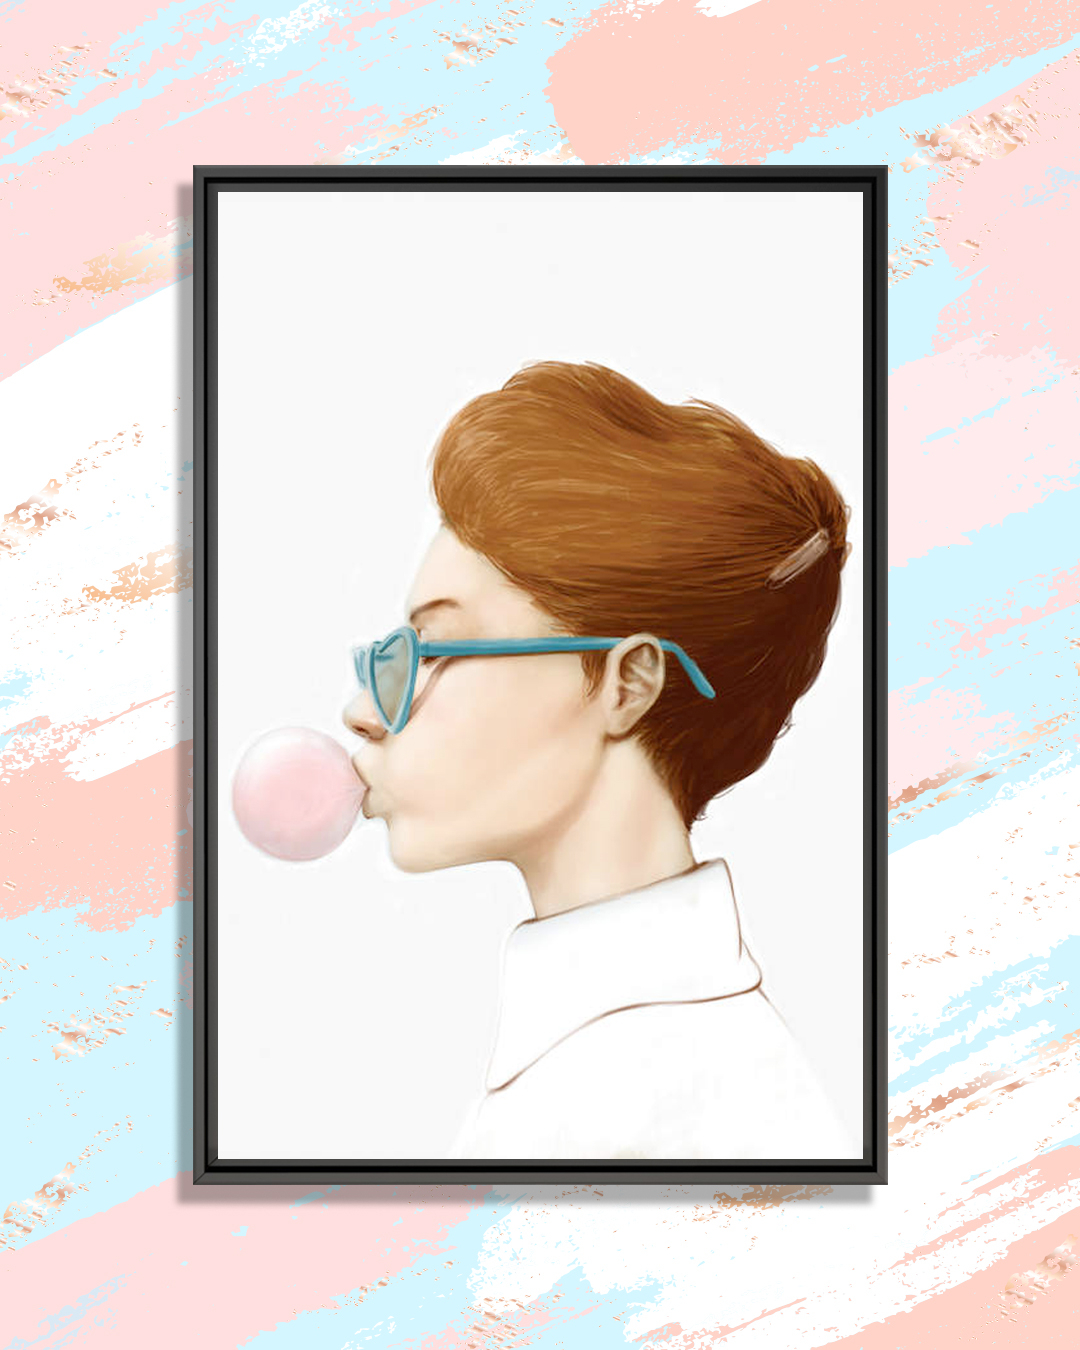 a profile of a woman wearing a white collared shirt and blue heart-shaped glasses blowing a bubble with gum